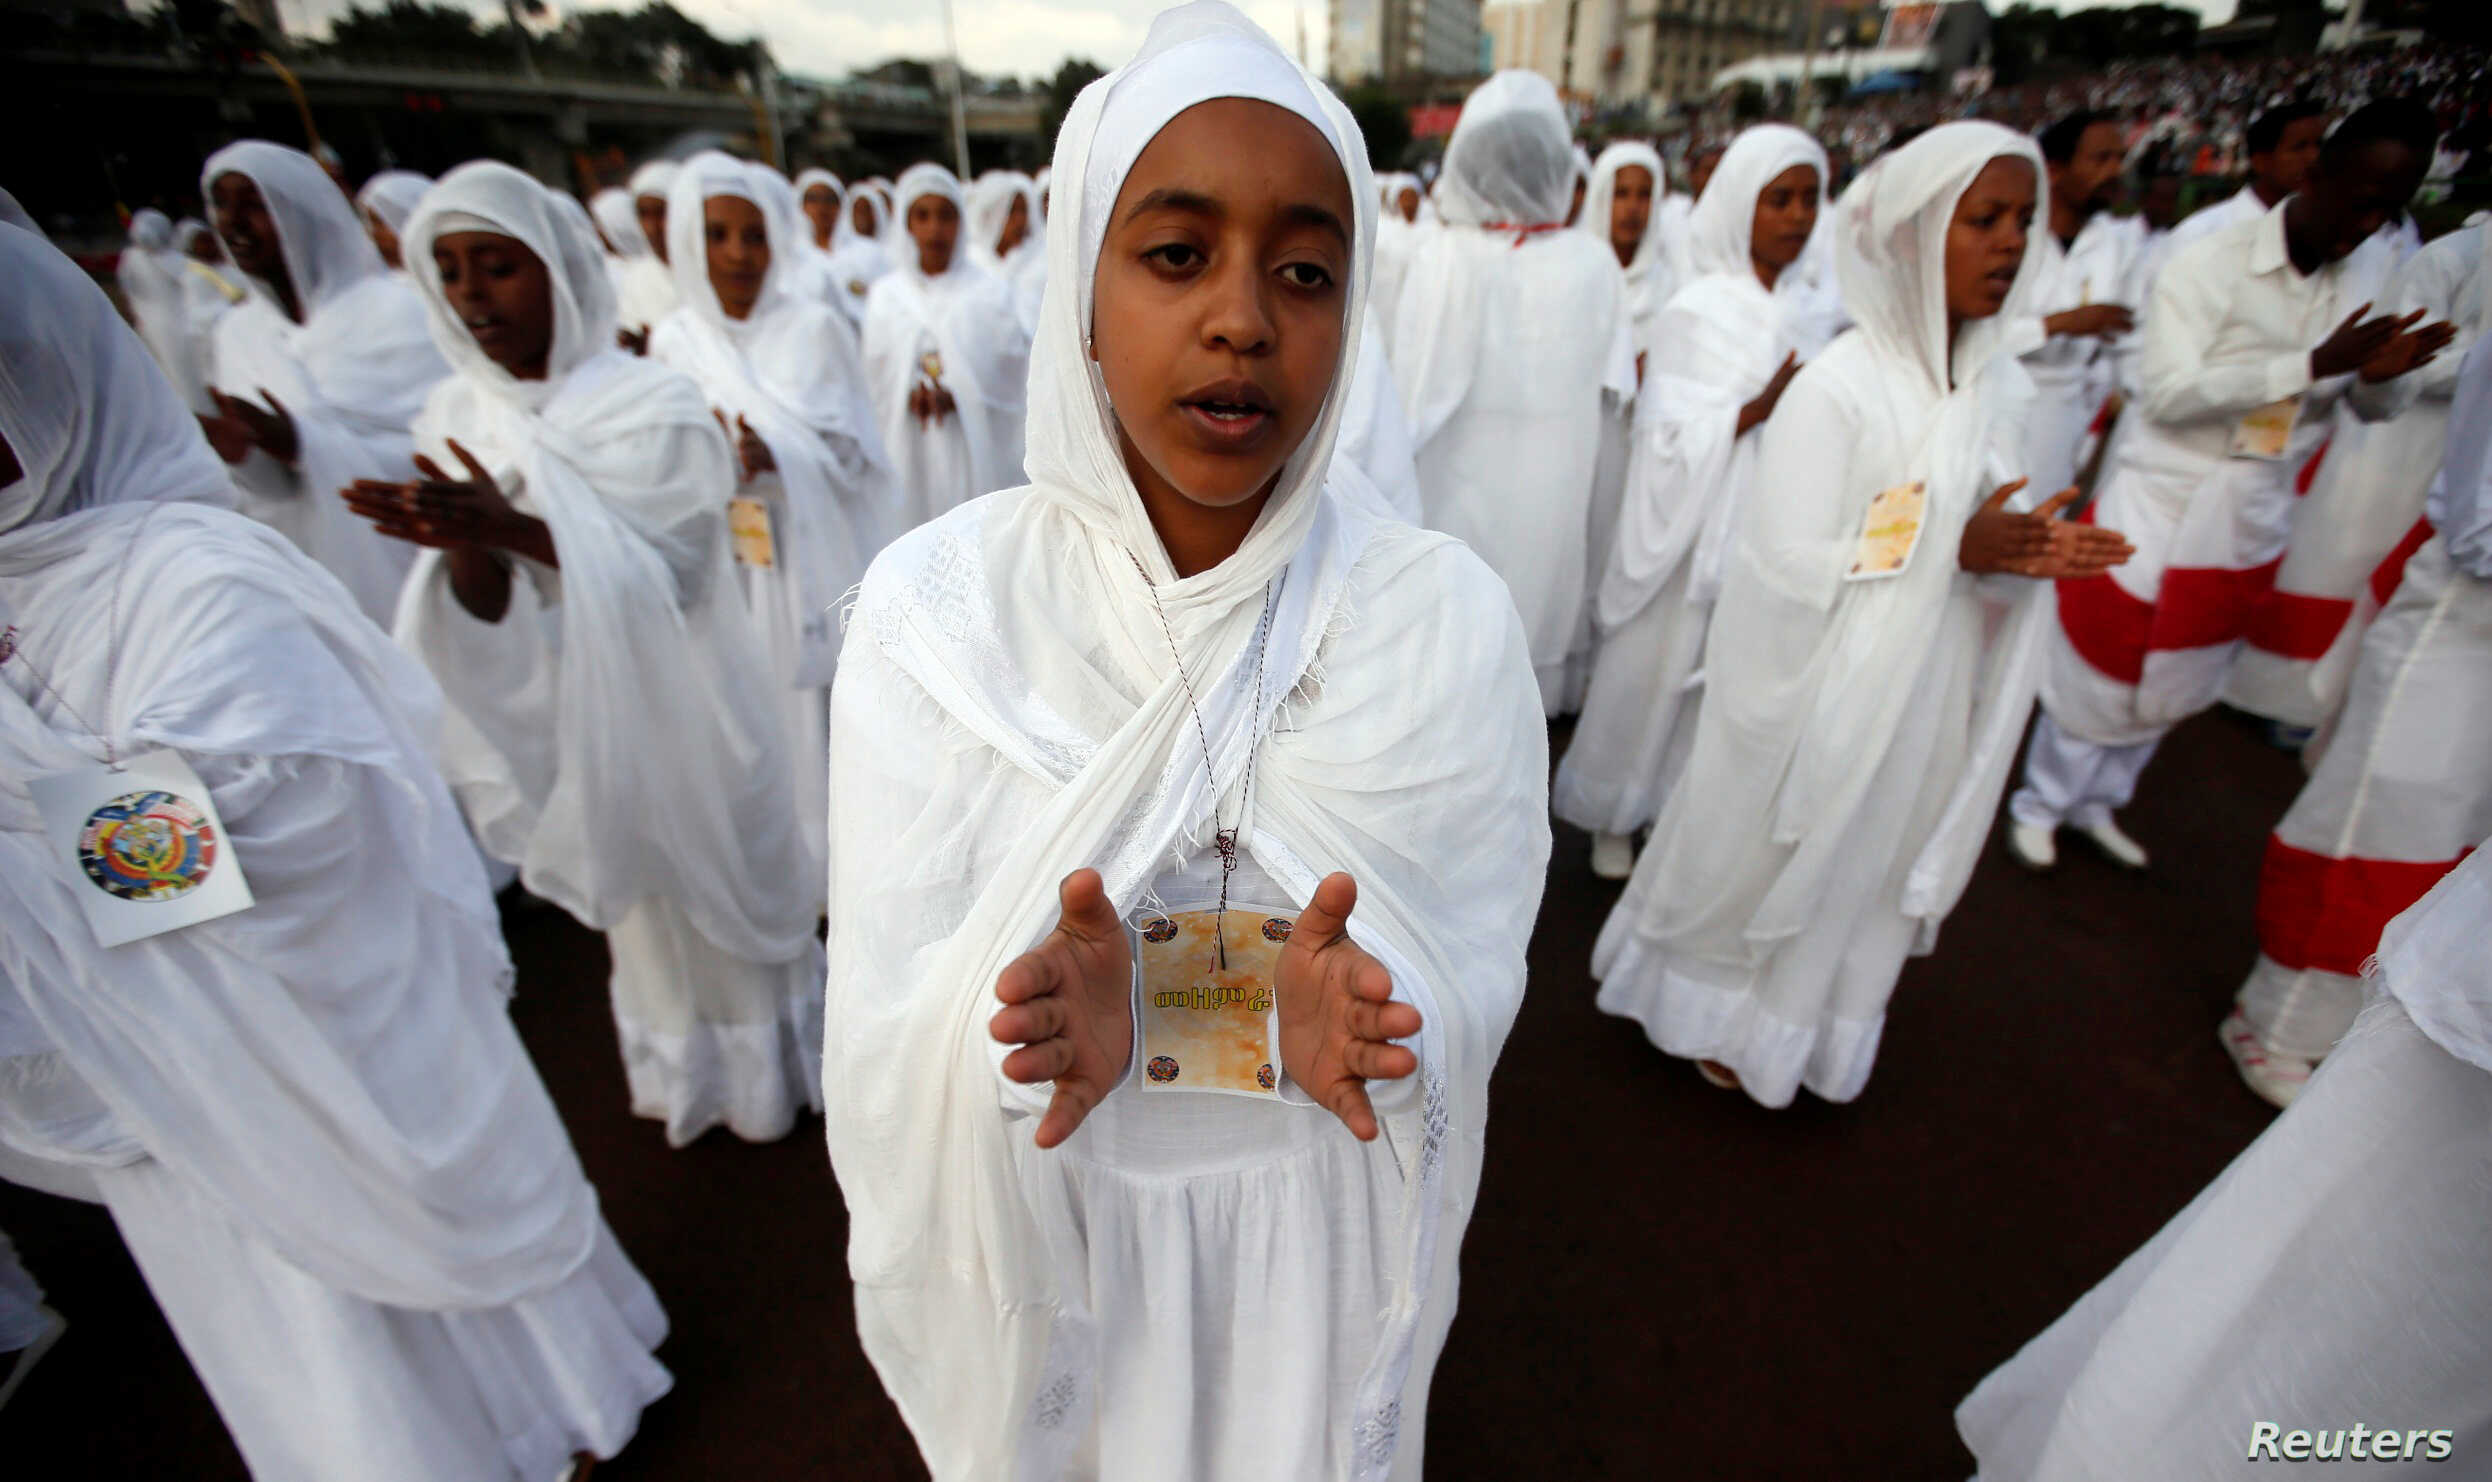 FILE - Sunday school children perform during the Meskel Festival to commemorate the discovery of the true cross on which Jesus Christ was crucified on at the Meskel Square in Ethiopia's capital Addis Ababa, Sept. 26, 2016.